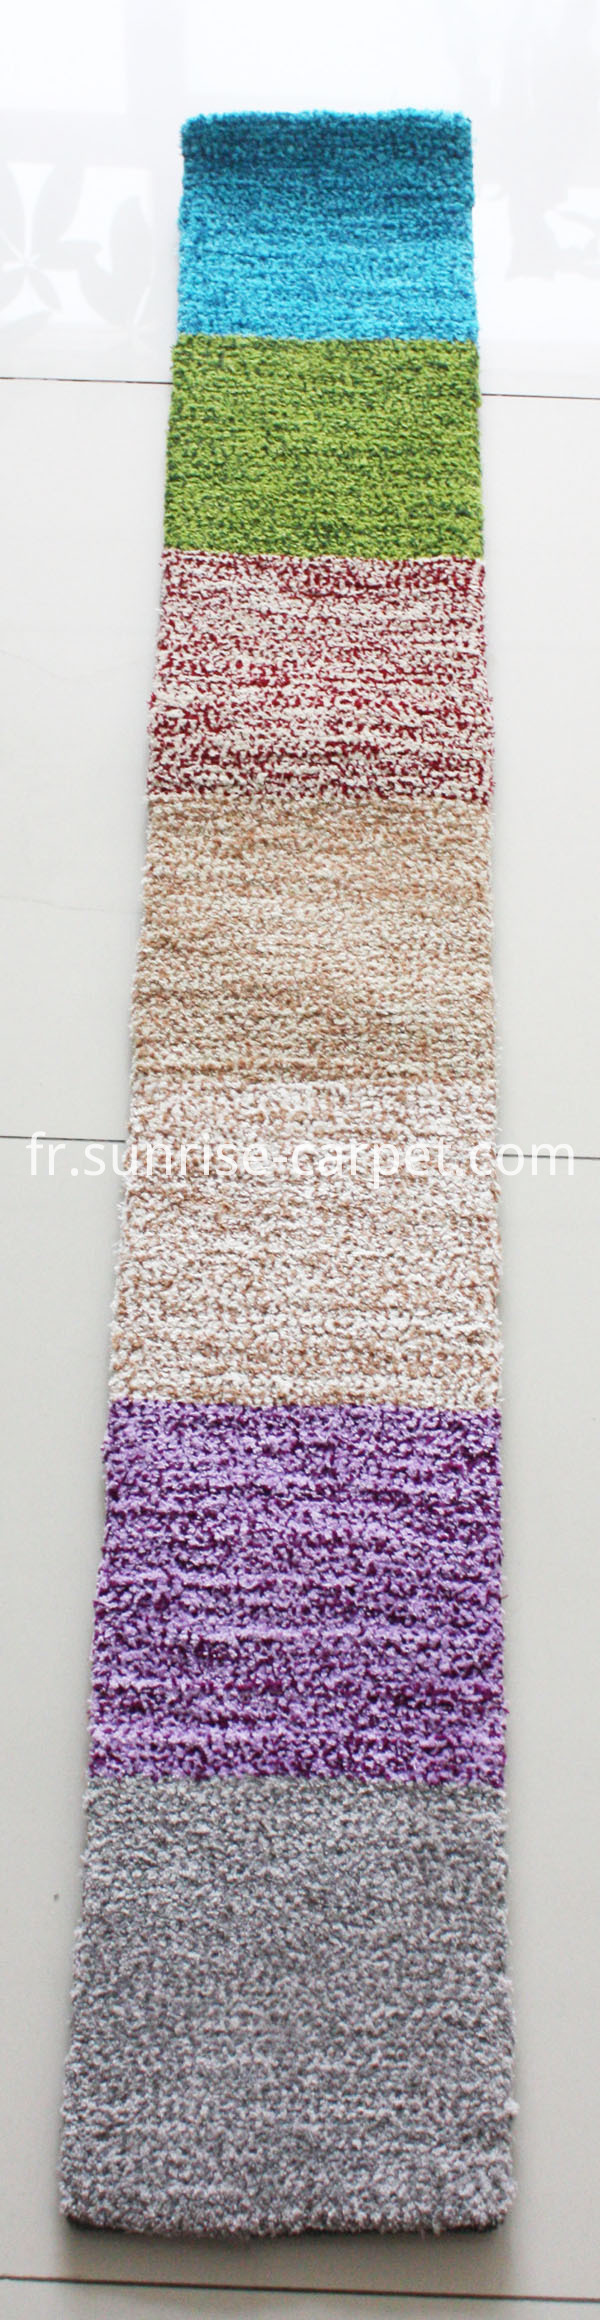 Microfiber Carpet with short pile color reference